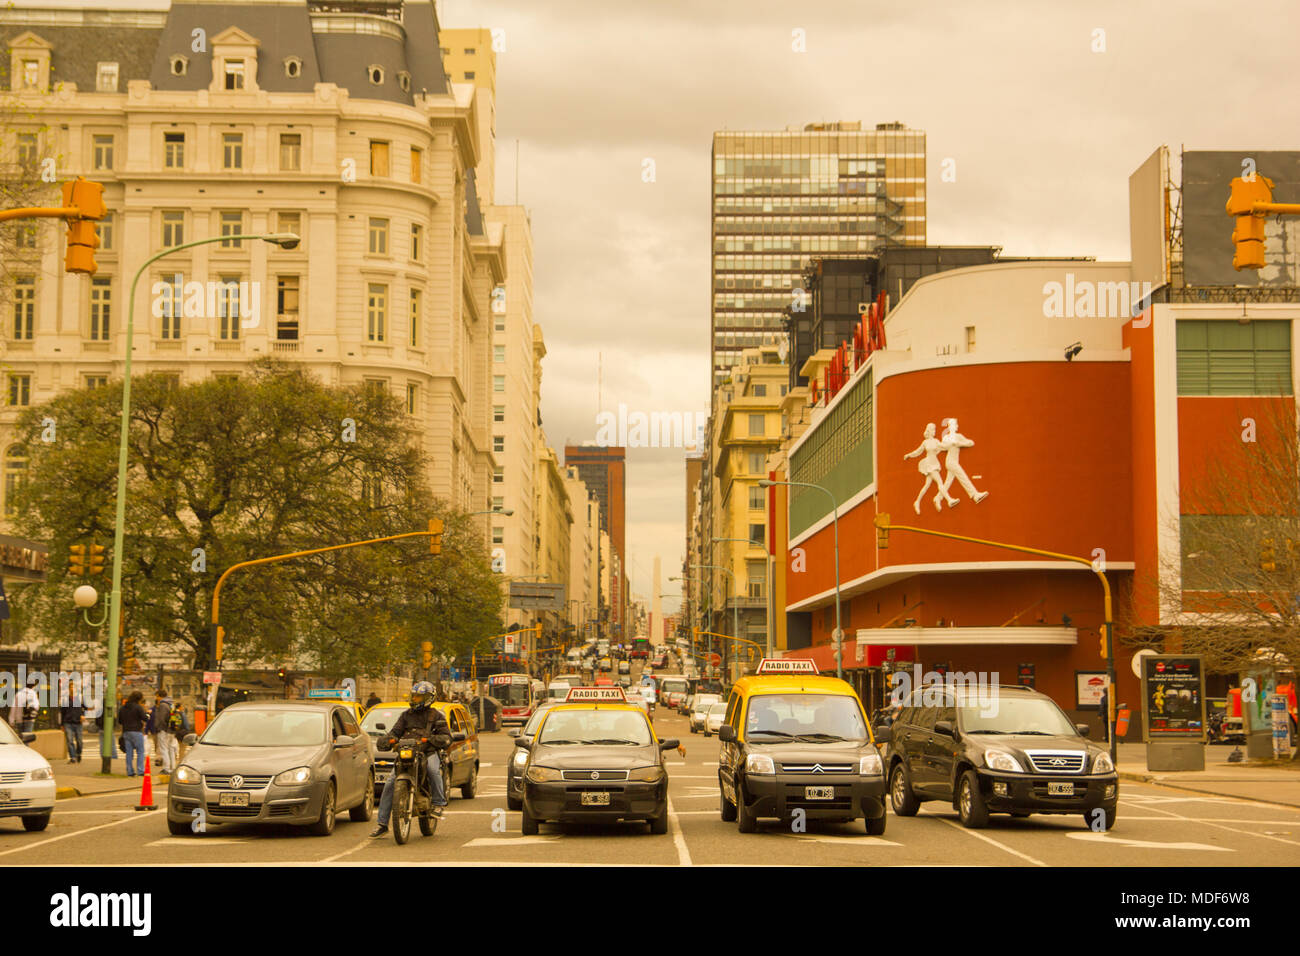 BUENOS AIRES, ARGENTINA - SEPTEMBER 20: Cars and taxis on Corrientes Street, the longest street in the world, with the famous Luna Park concert hall o - Stock Image